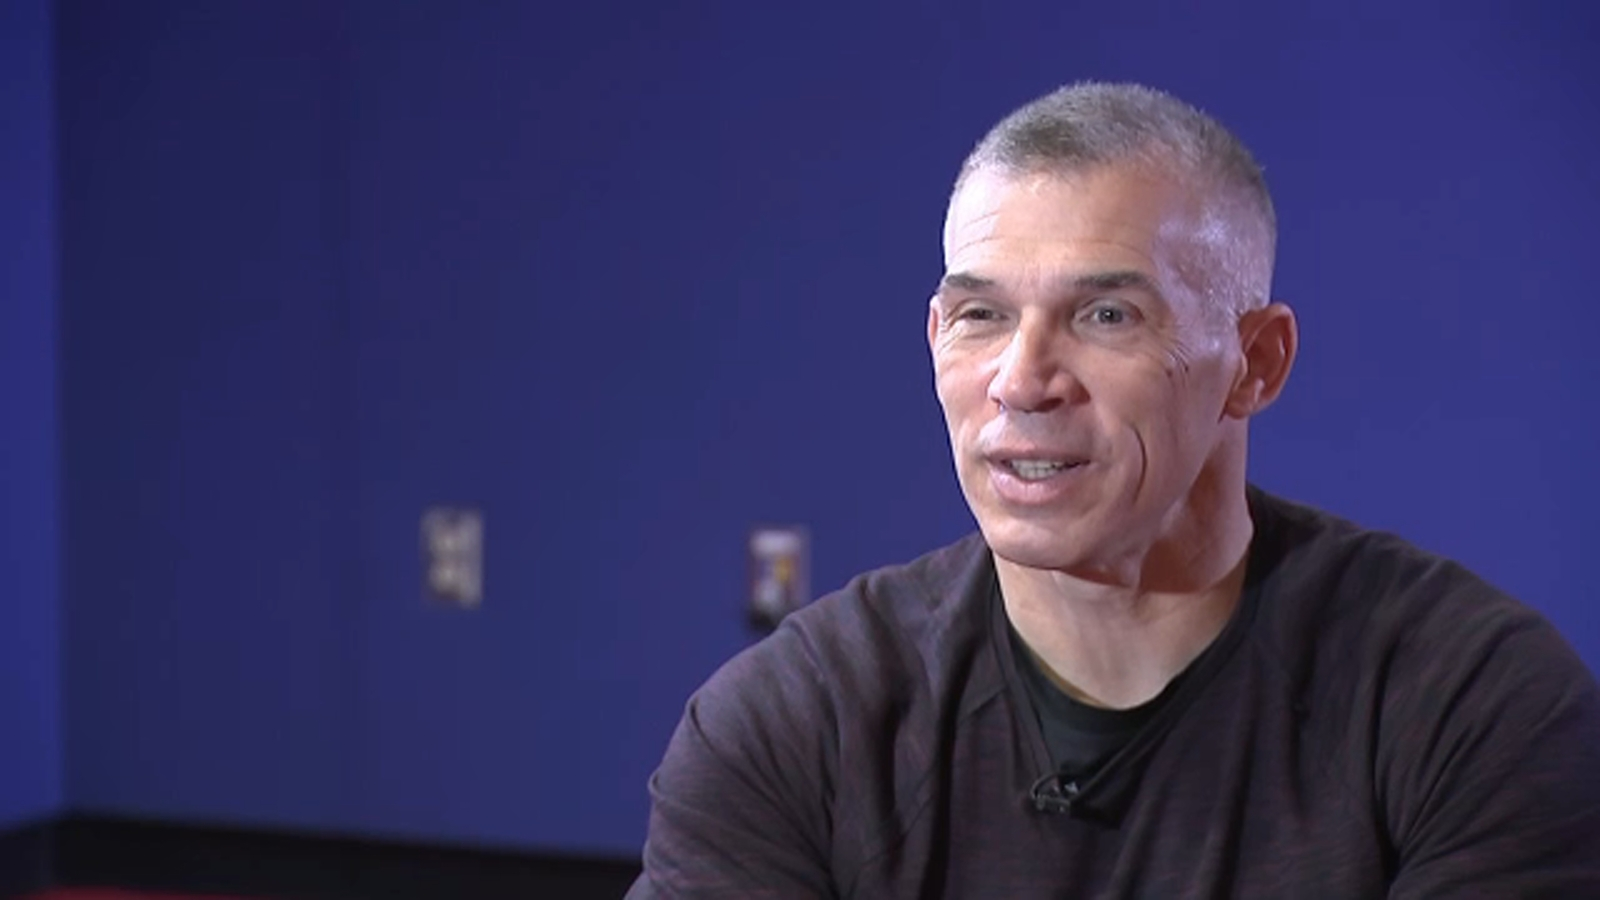 Phillies manager Joe Girardi says he picked Philadelphia for several reasons